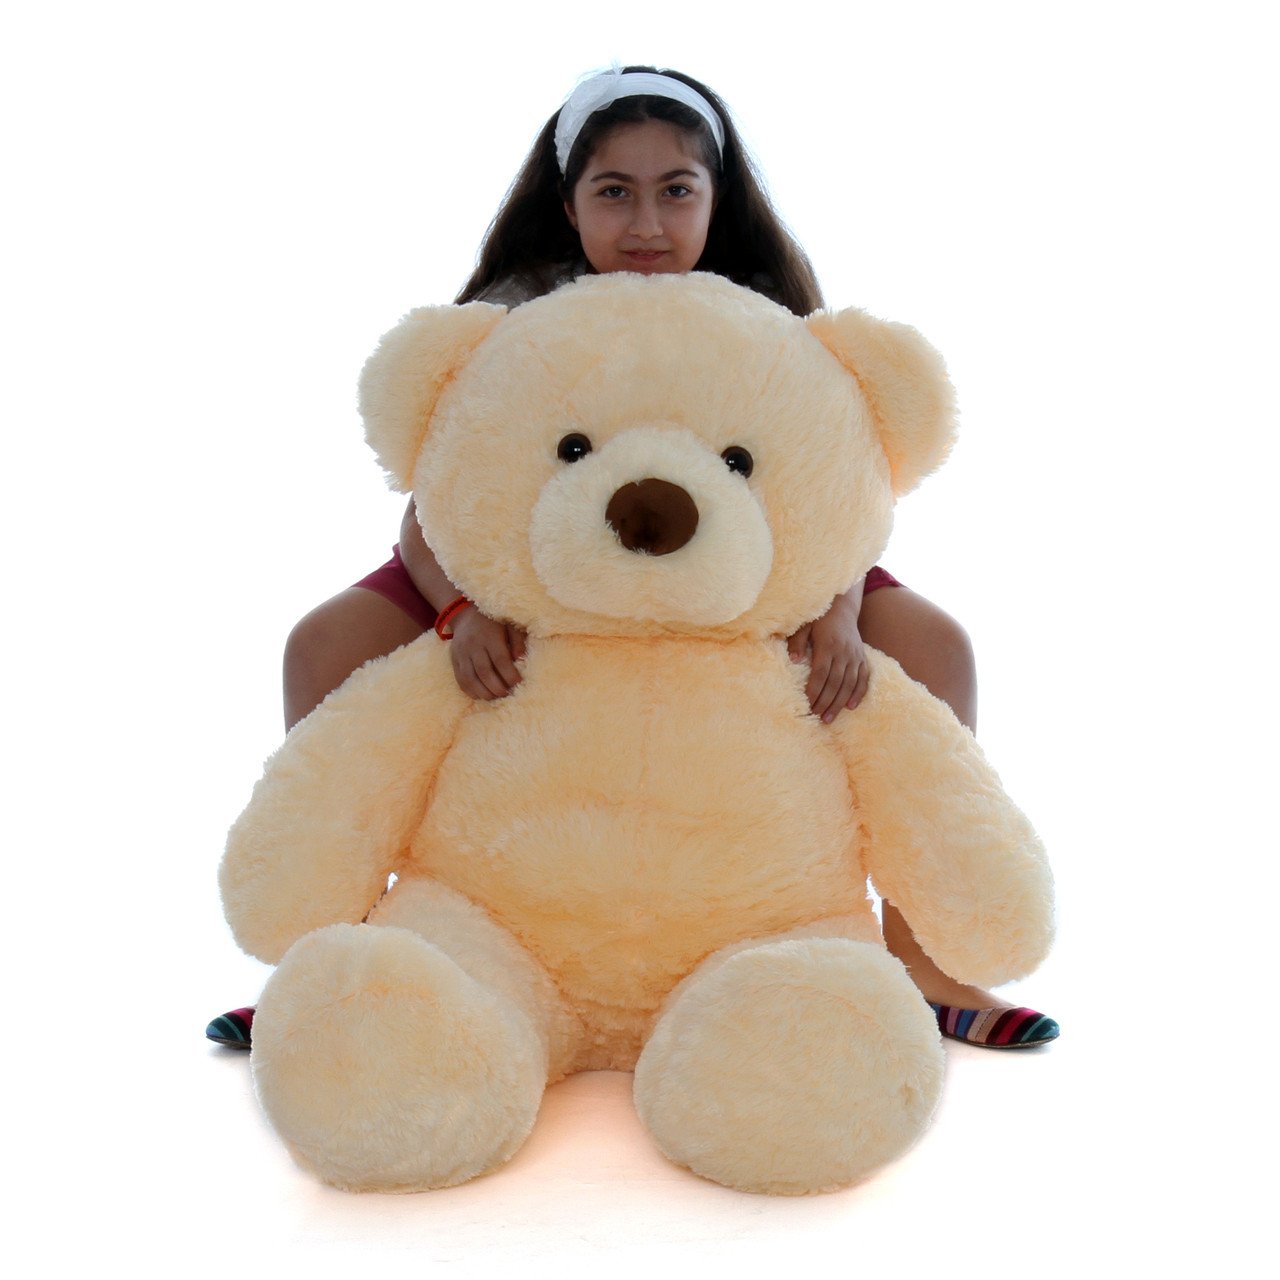 Smiley Chubs Adorable Life Size Vanilla Cream Teddy Bear 4Ft